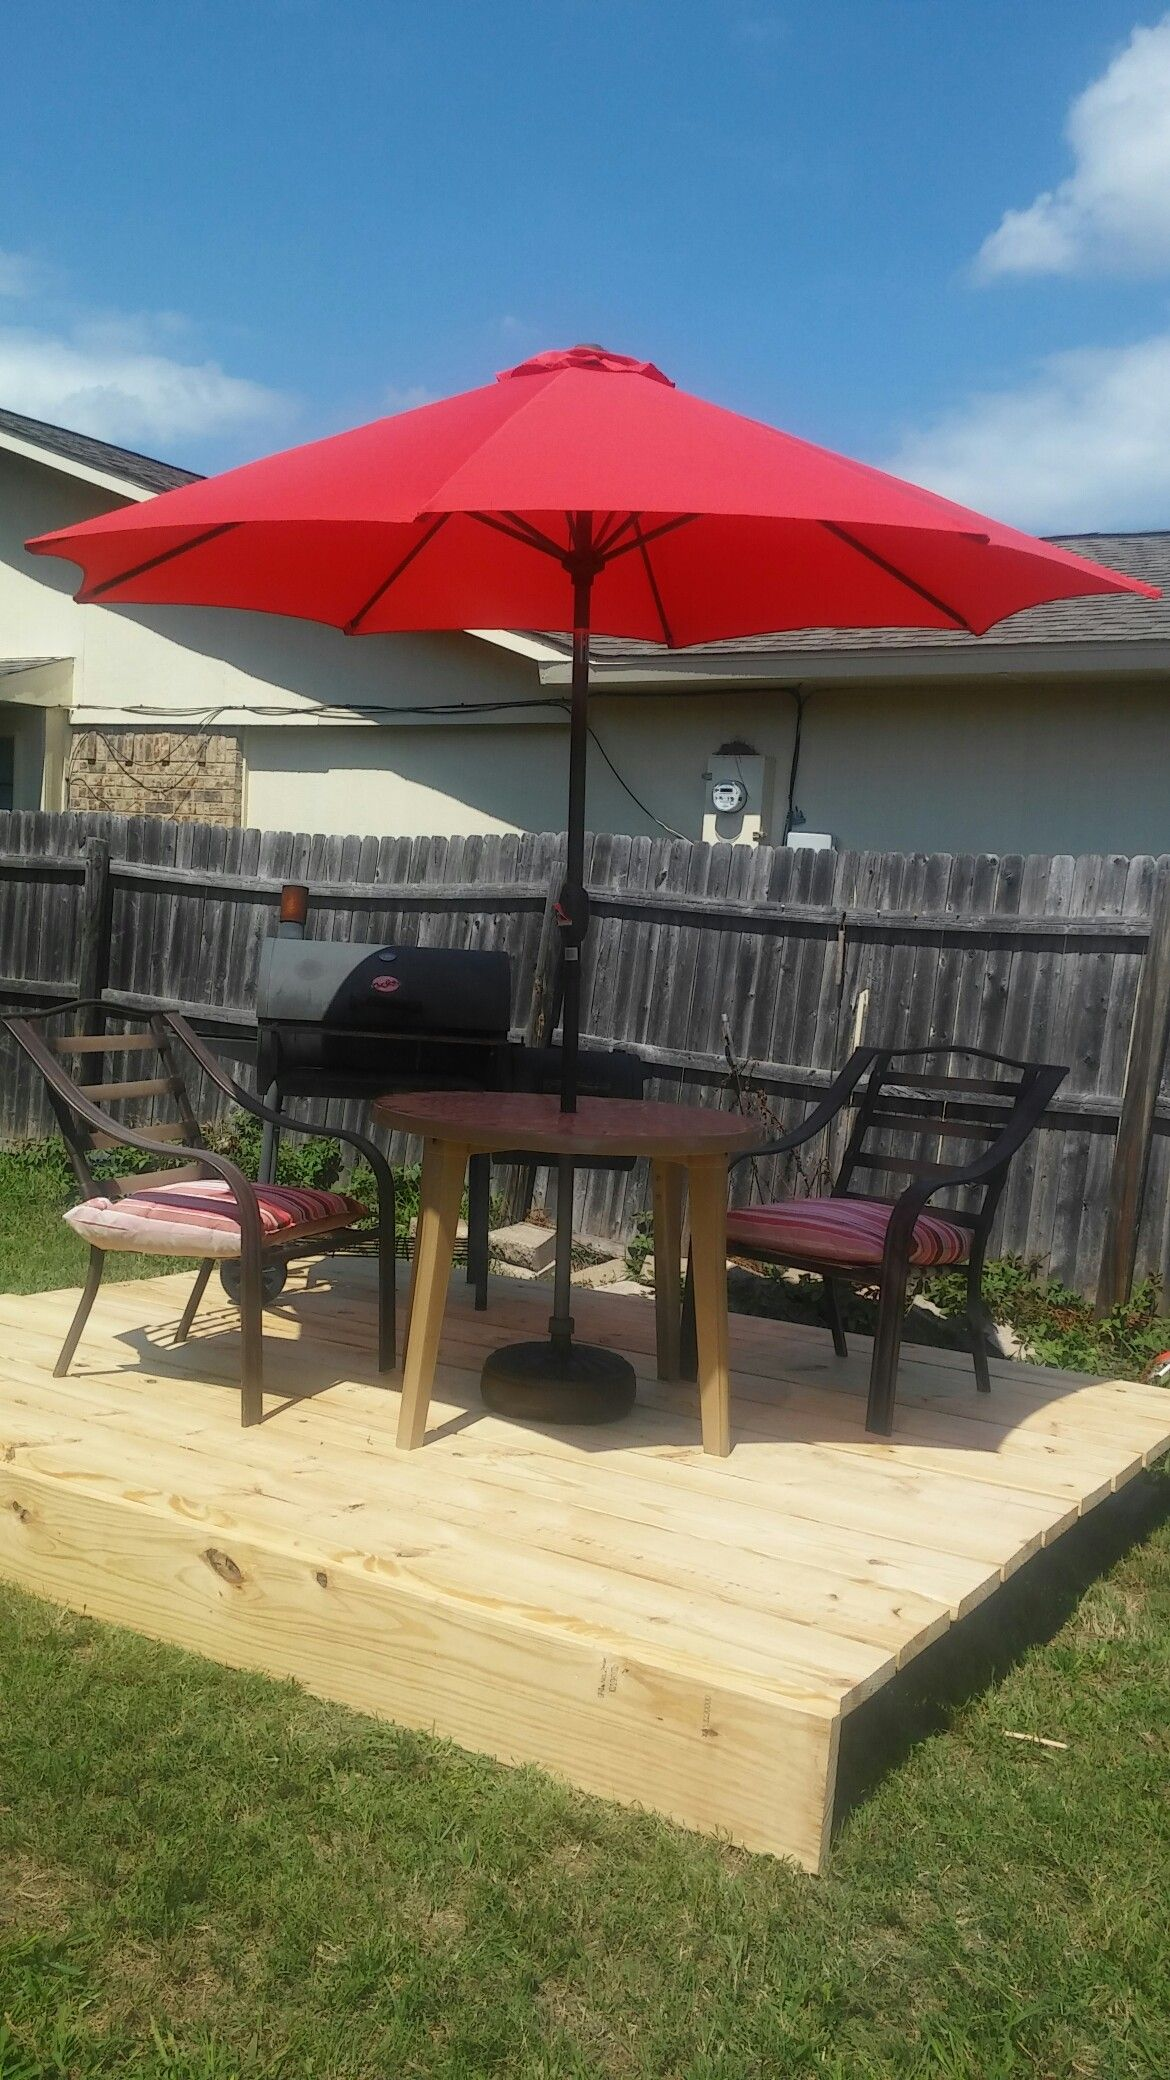 Diy Floating Deck 10x10 Under 200 Floating Deck Patio Patio Umbrella